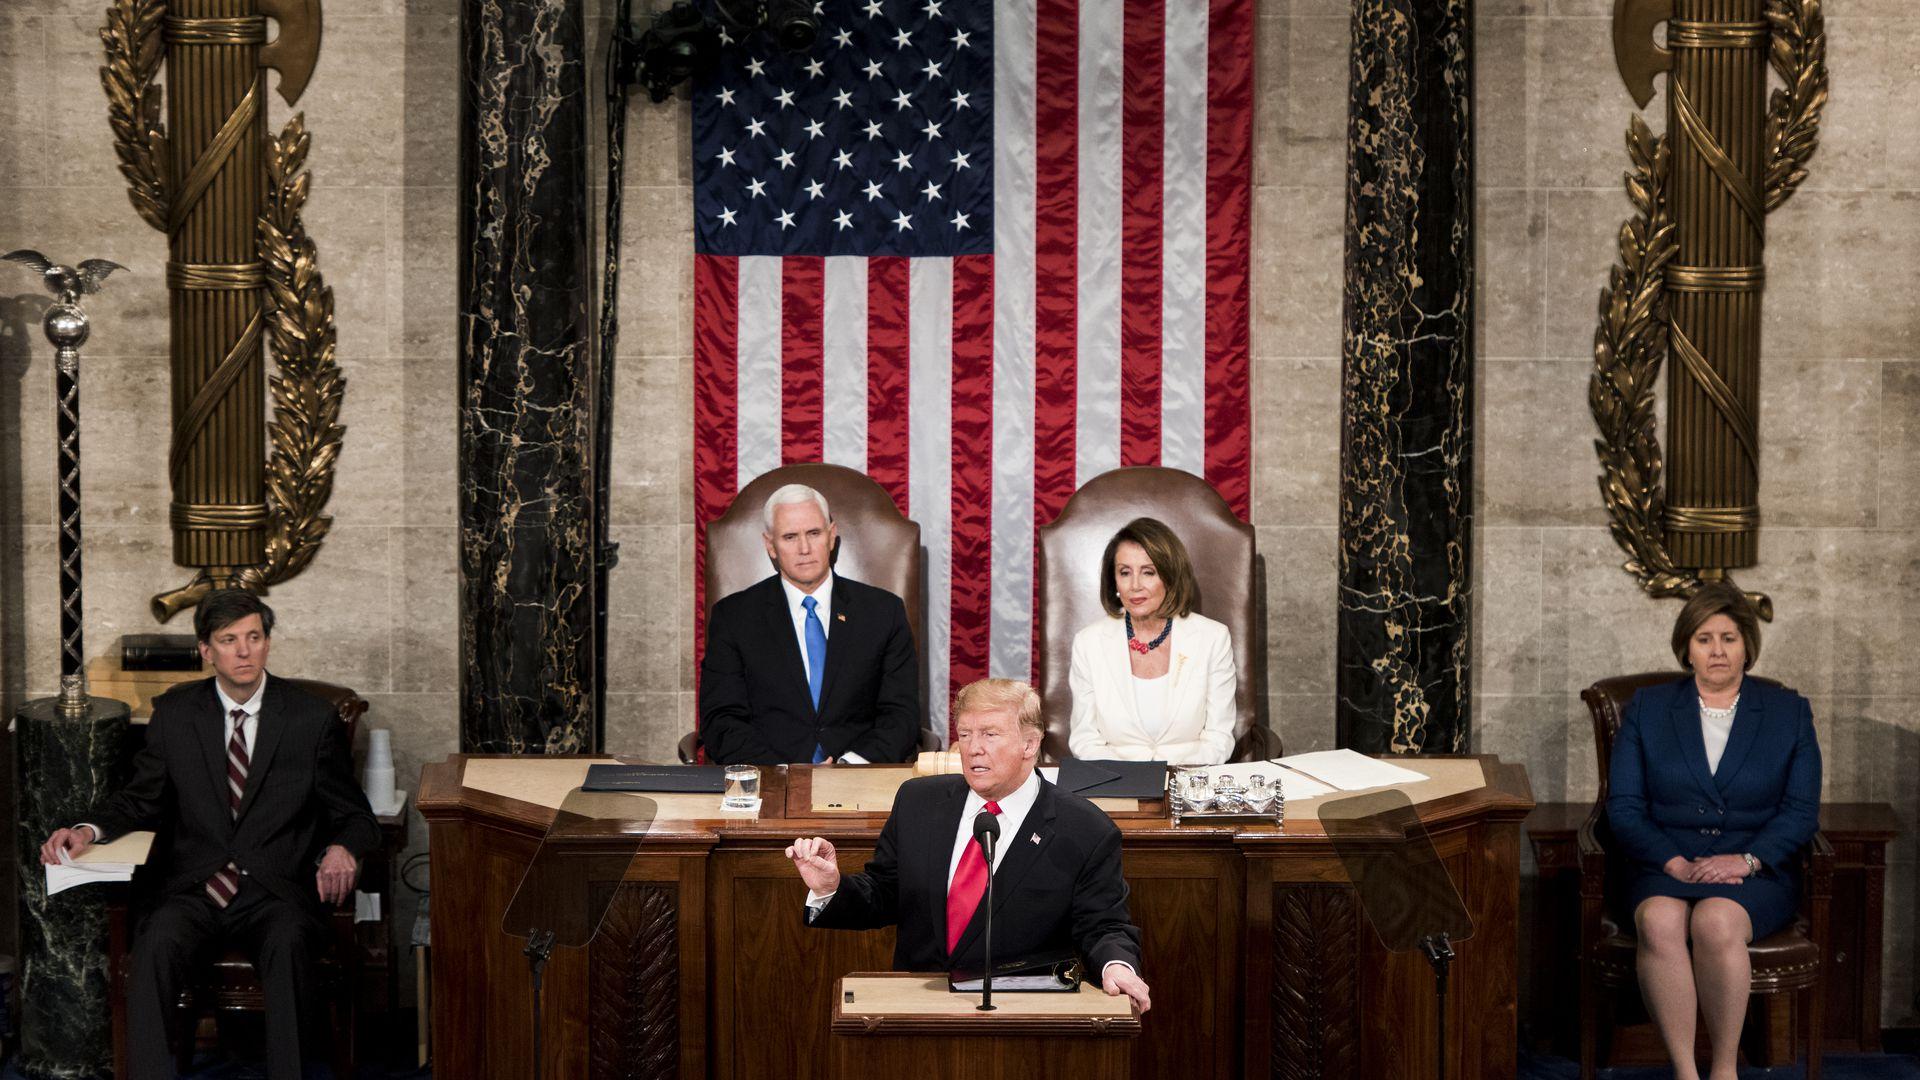 Donald Trump, Nancy Pelosi and Mike Pence at the 2019 State of the Union.